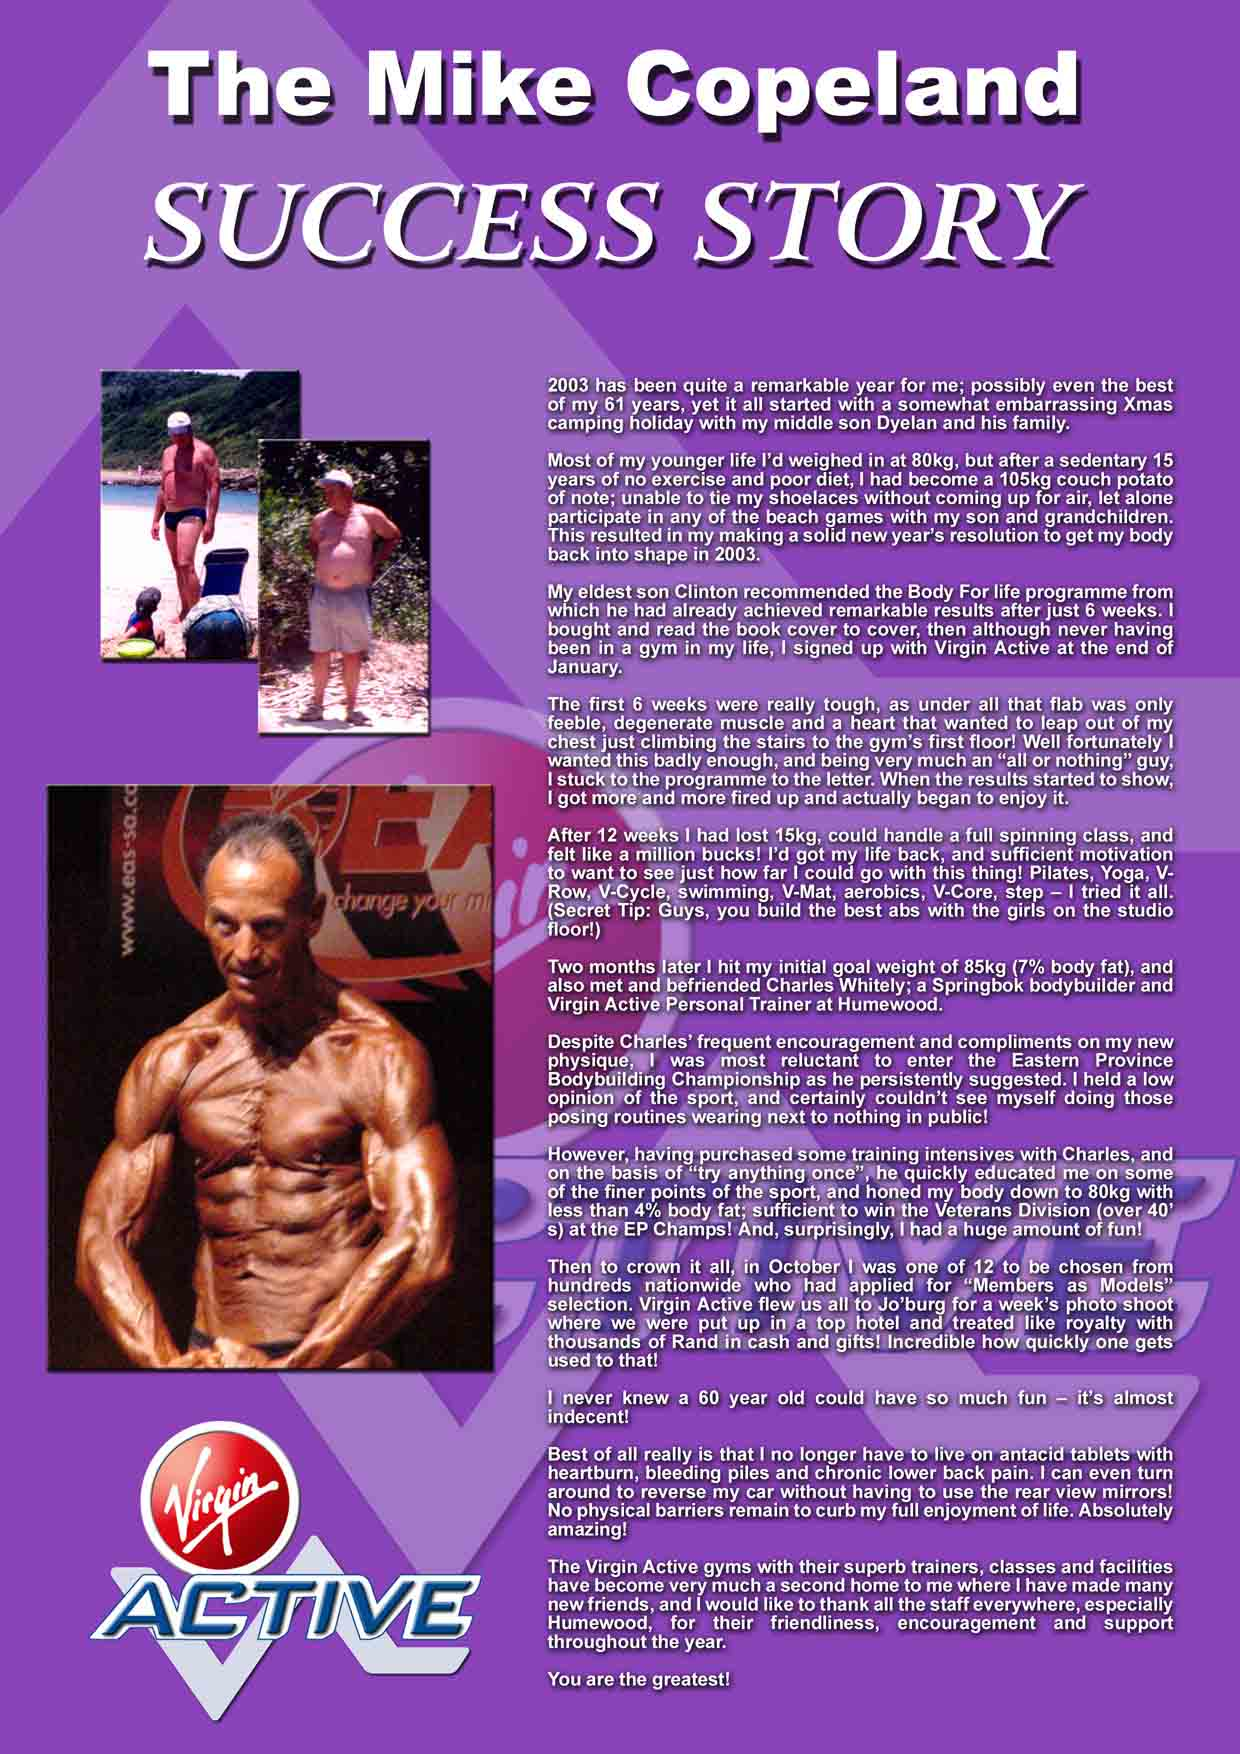 the mike copeland success story - About